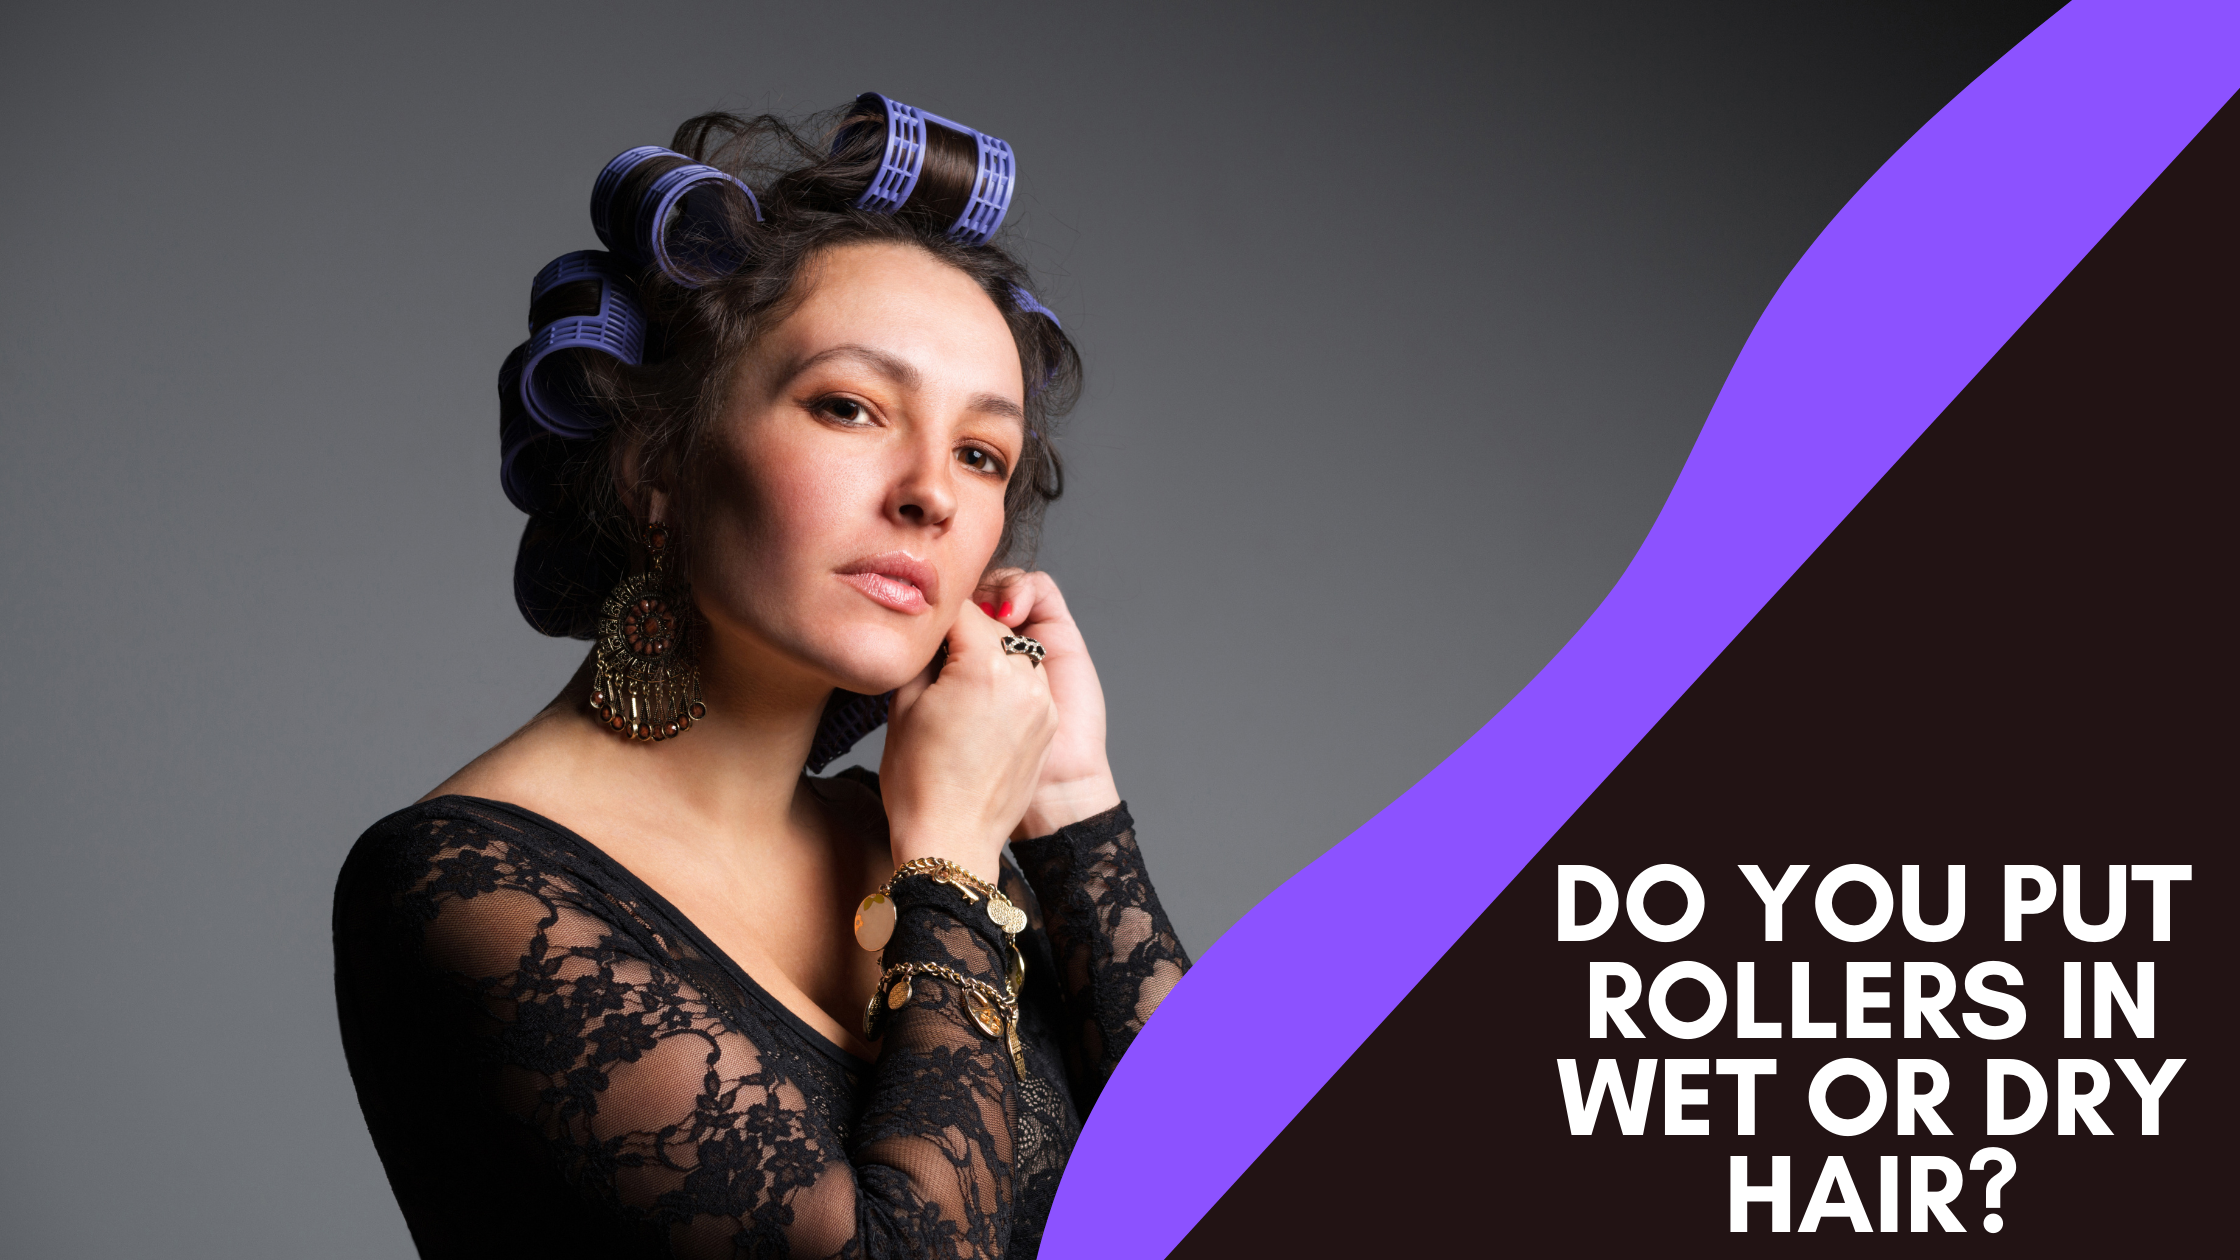 do you put hair rollers in wet or dry hair